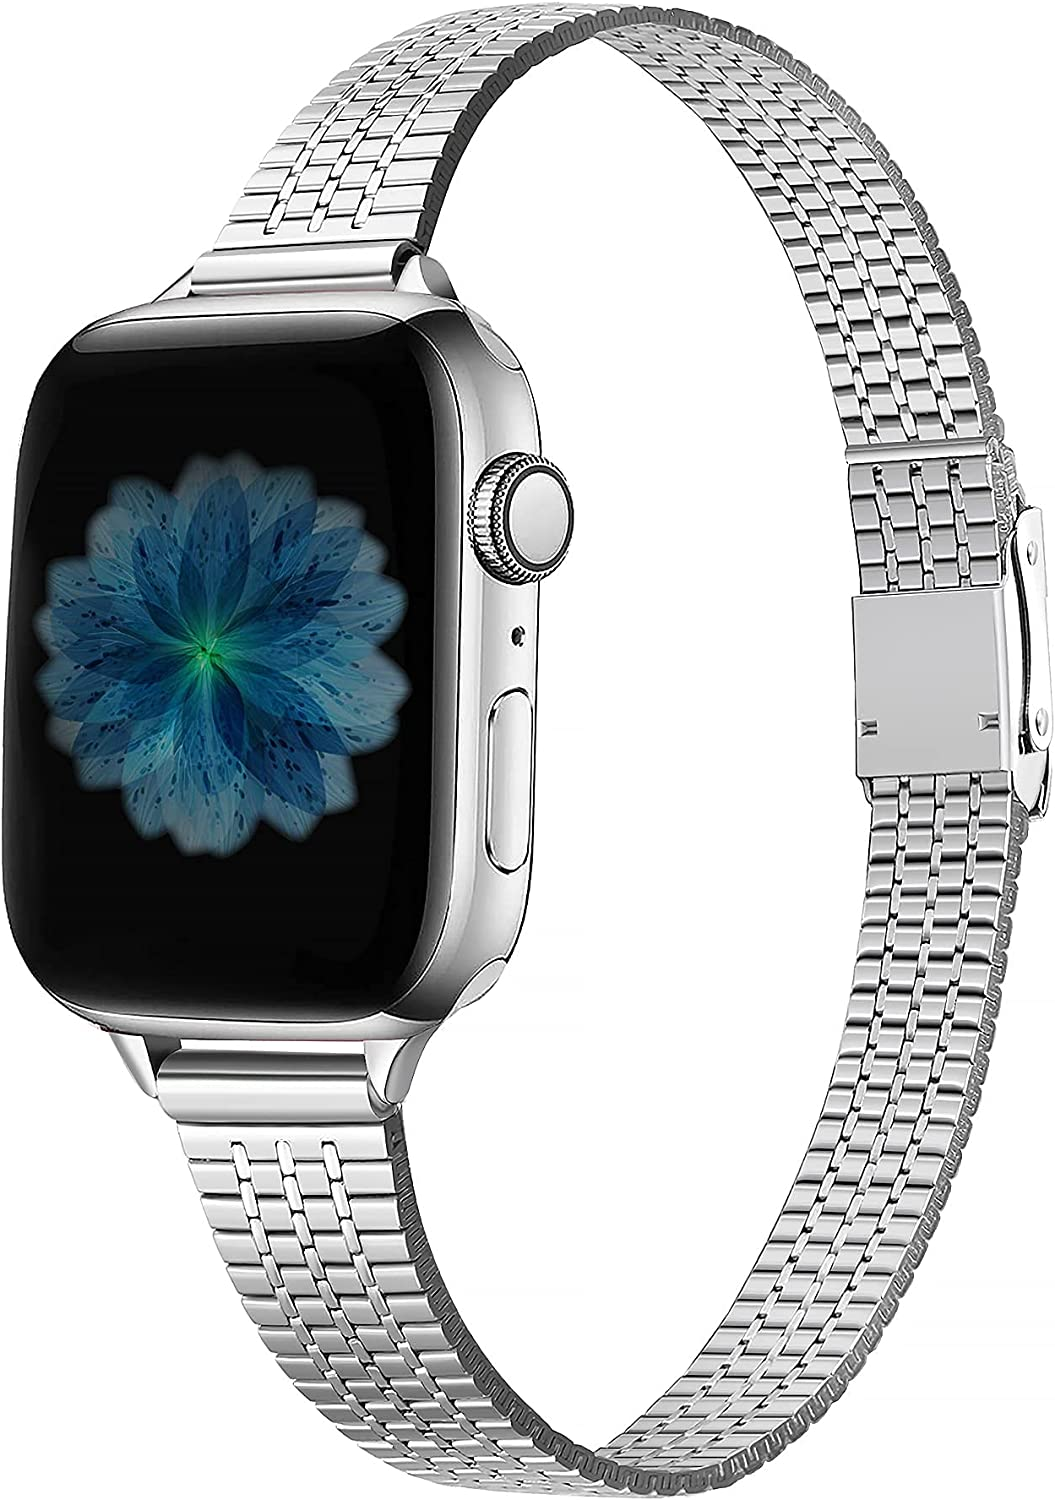 Secbolt Thin Bands Compatible with Apple Watch Band 38mm 40mm 41mm 42mm 44mm 45mm iWatch SE Series 7/6/5/4/3/2/1, Stainless Steel Women Dressy Wristband Secure Double Lock